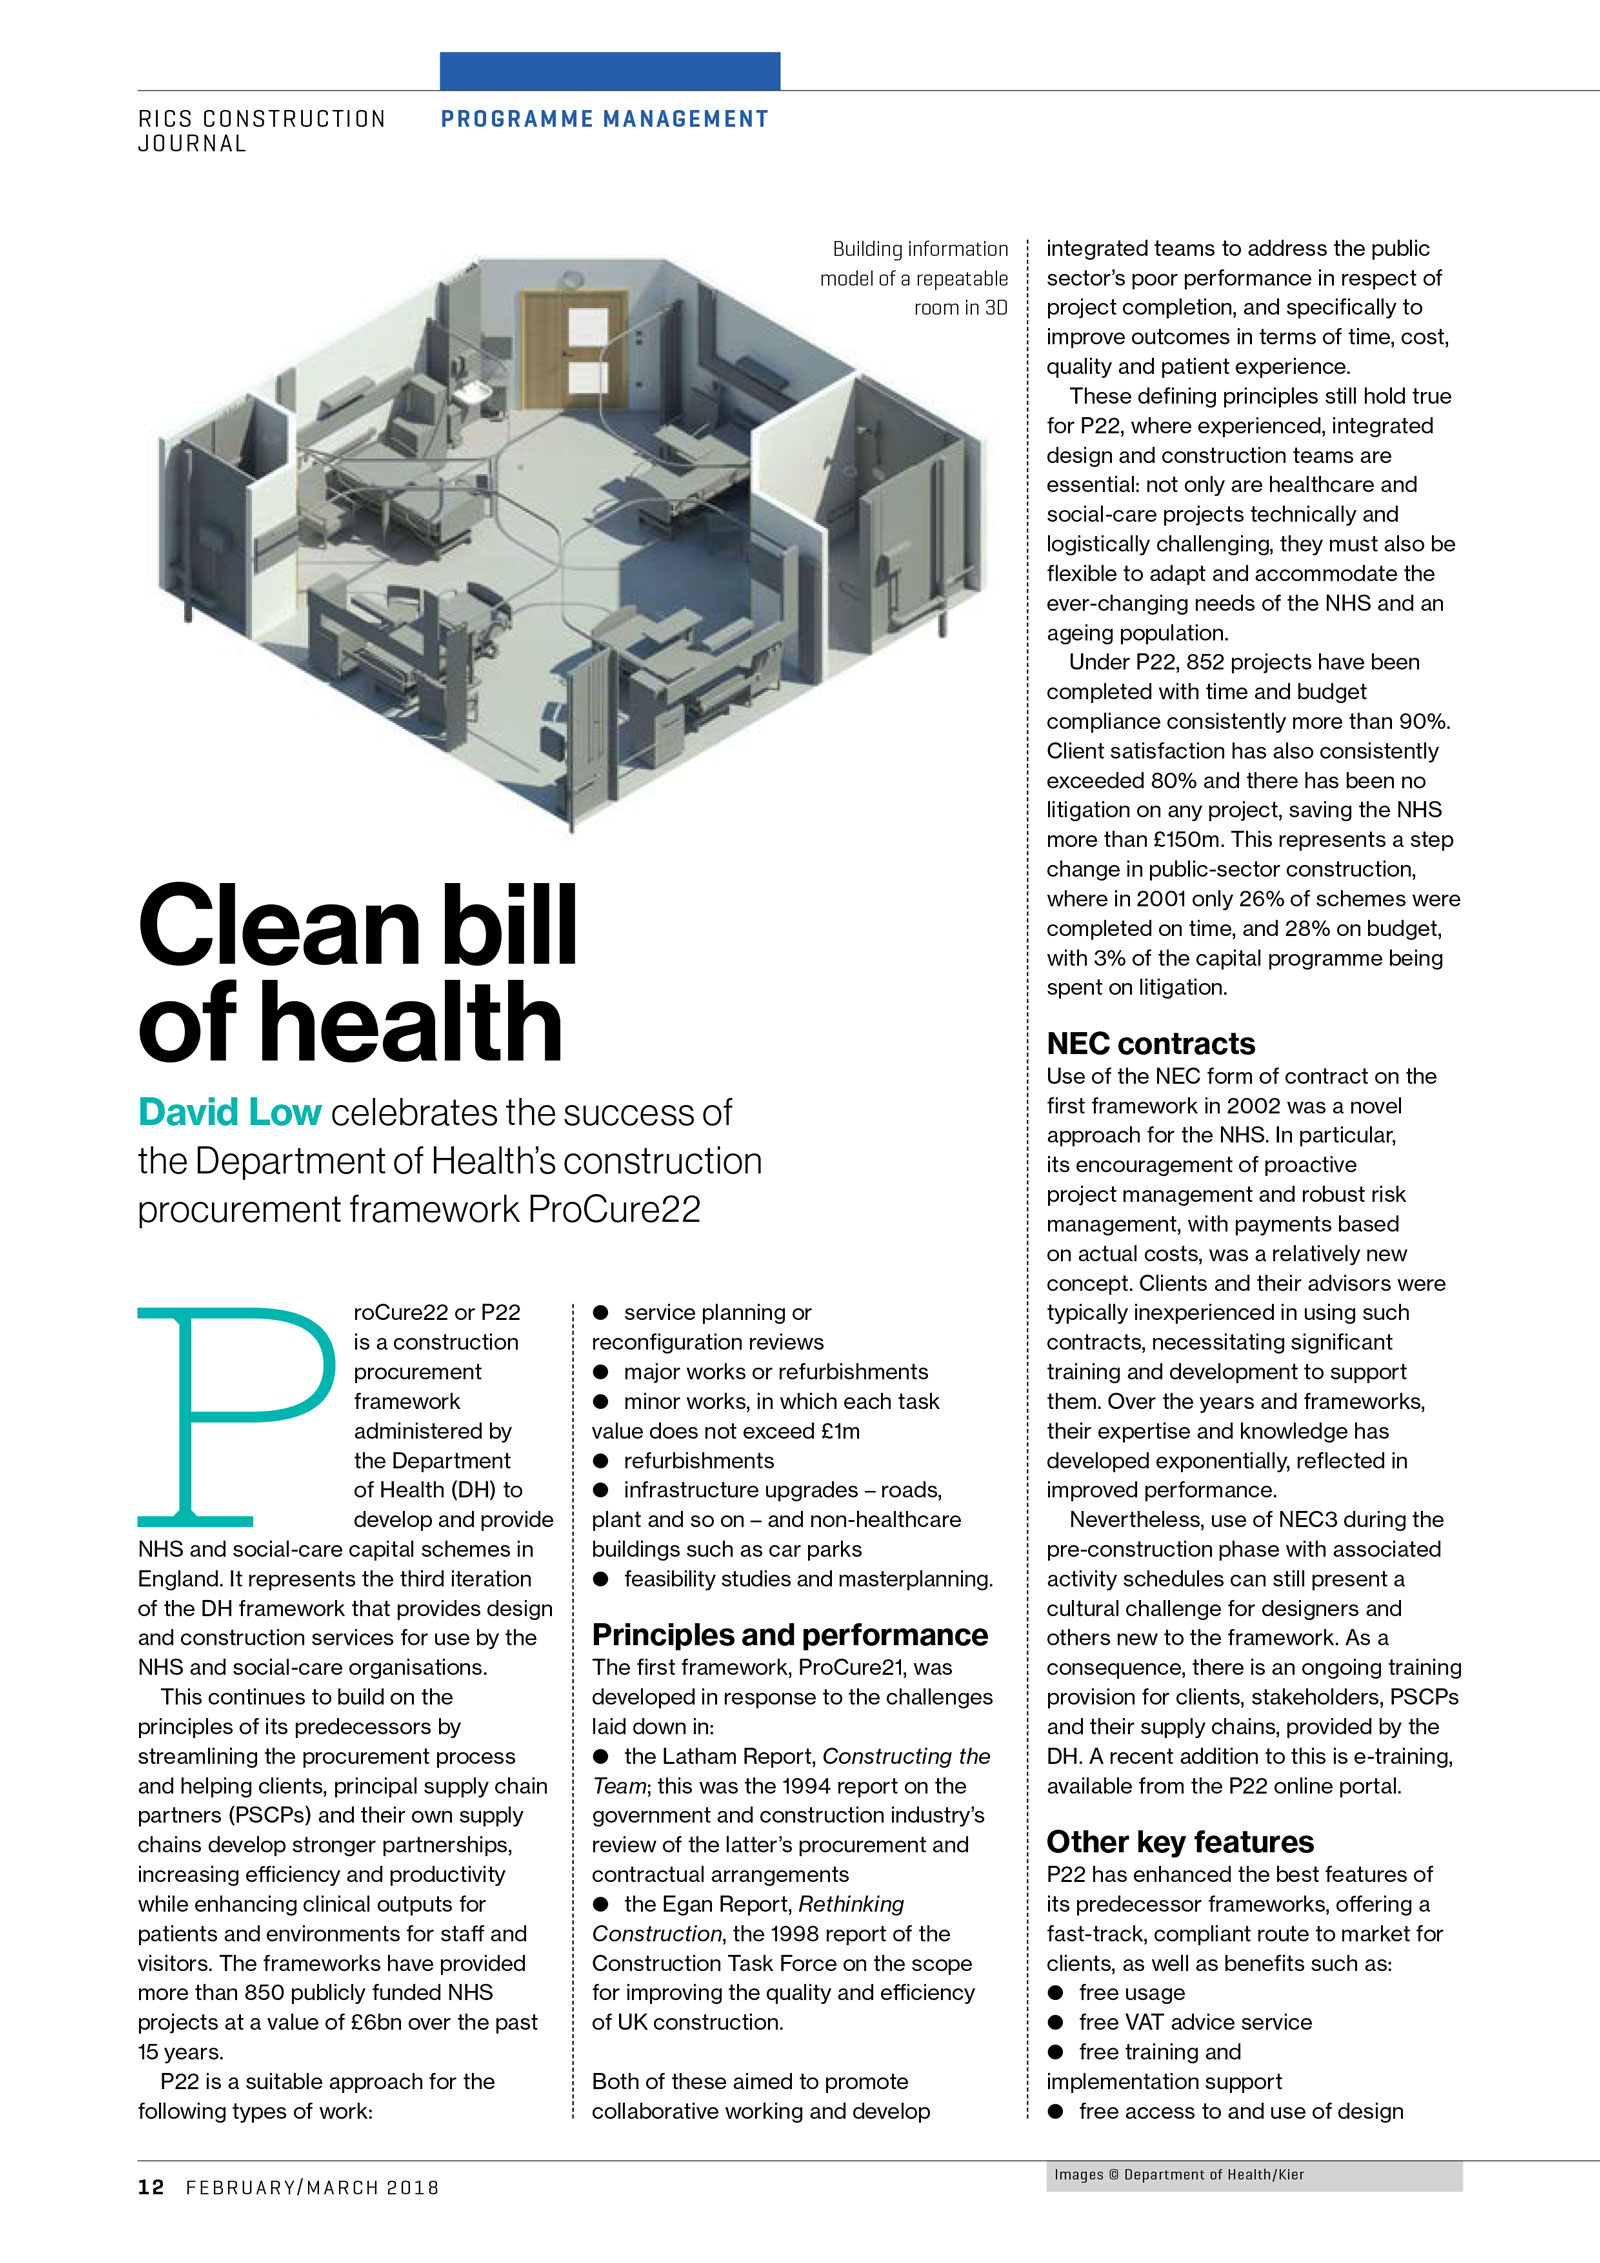 Rics construction journal february march 2018 p22s clean bill of download from the rics construction journal website ricsuknewsjournalsconstruction journalconstruction journal februarymarch 2018 ccuart Images